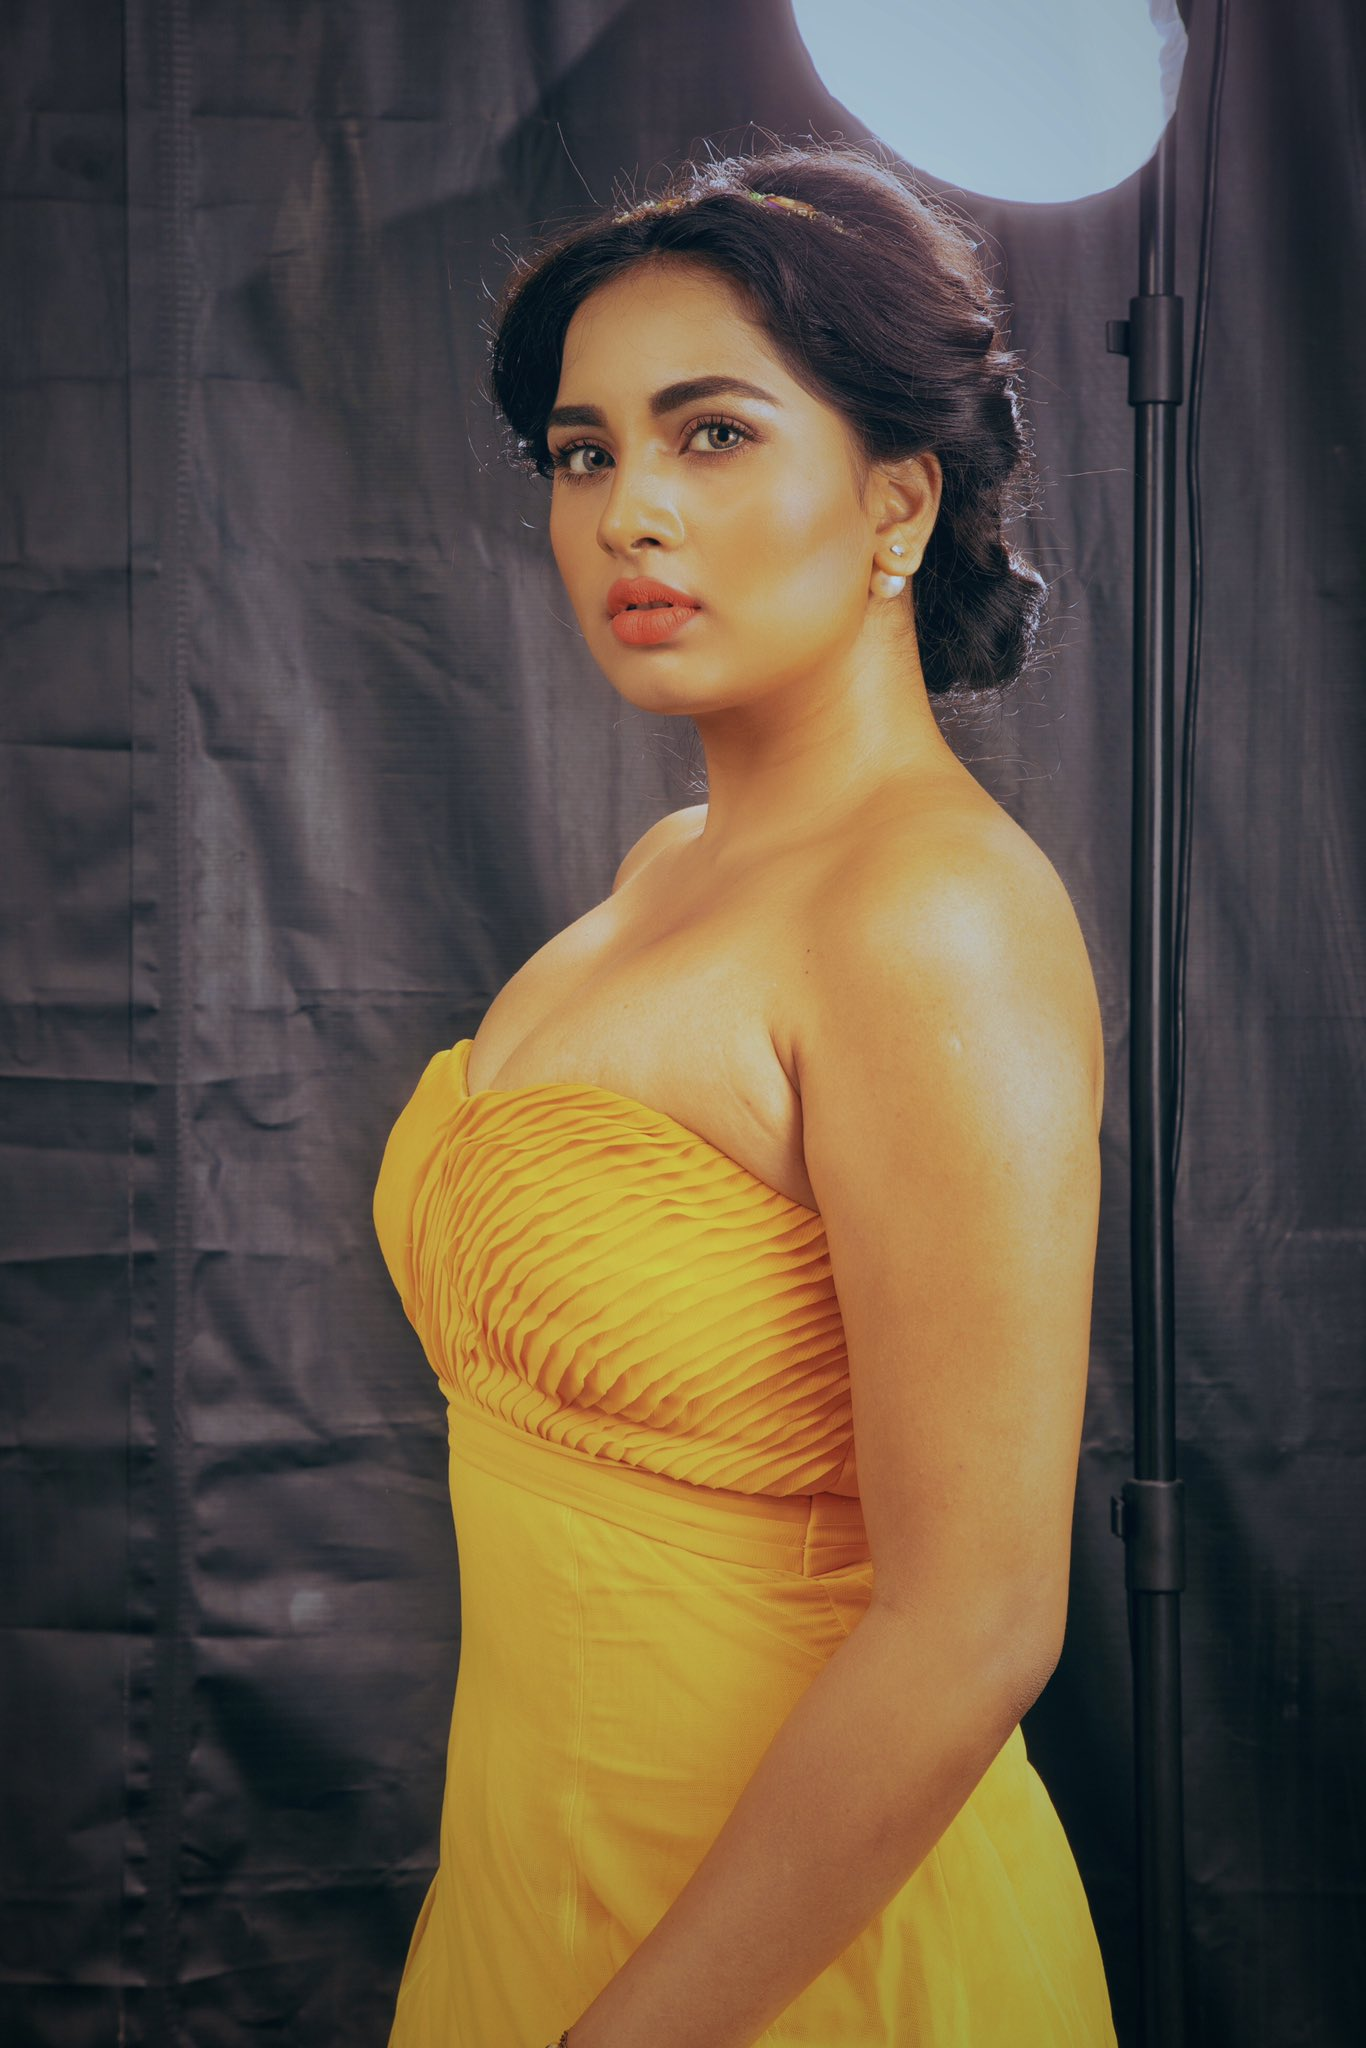 Actress Srushti Dange Latest Photoshoot, Srushti Dange 2020 photoshoot, Srushti Dange boyfriend, Srushti Dange yellow photoshoot, Srushti Dange sexy